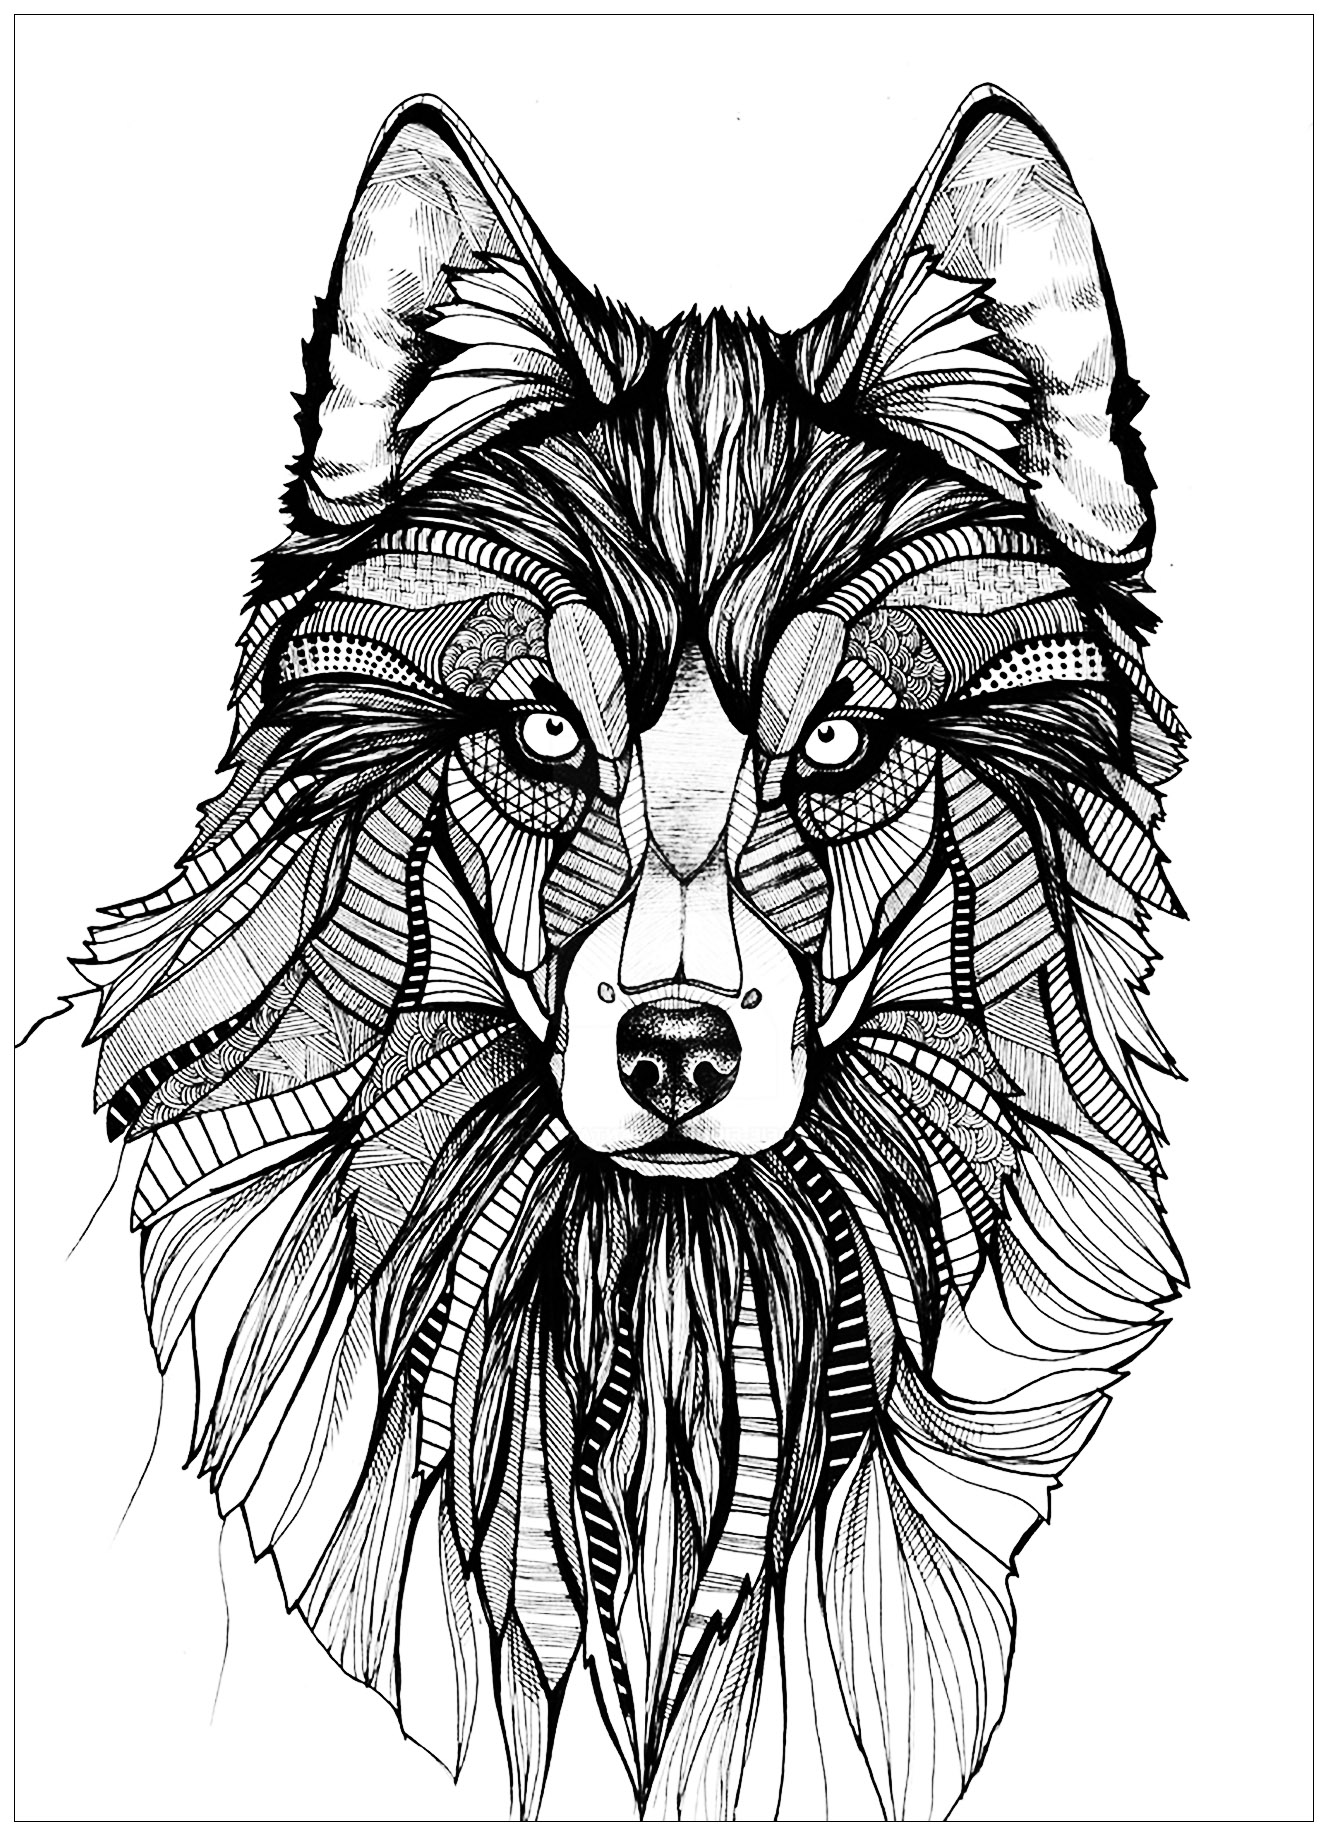 Wolves - Coloring pages for adults | JustColor